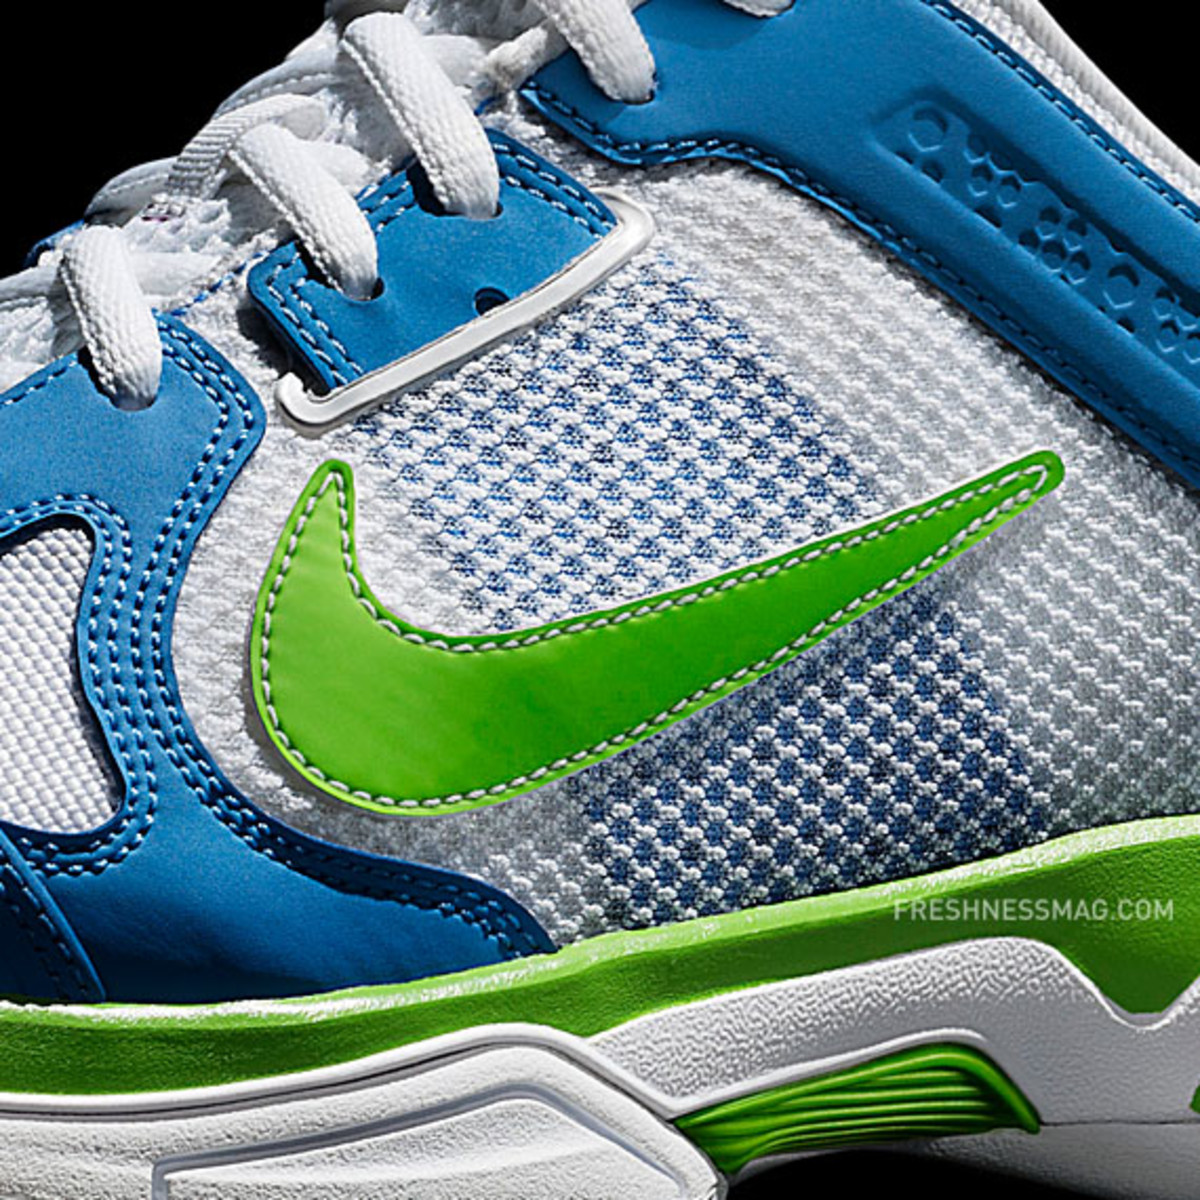 nike-tennis-2011-australian-open-serena-williams-04